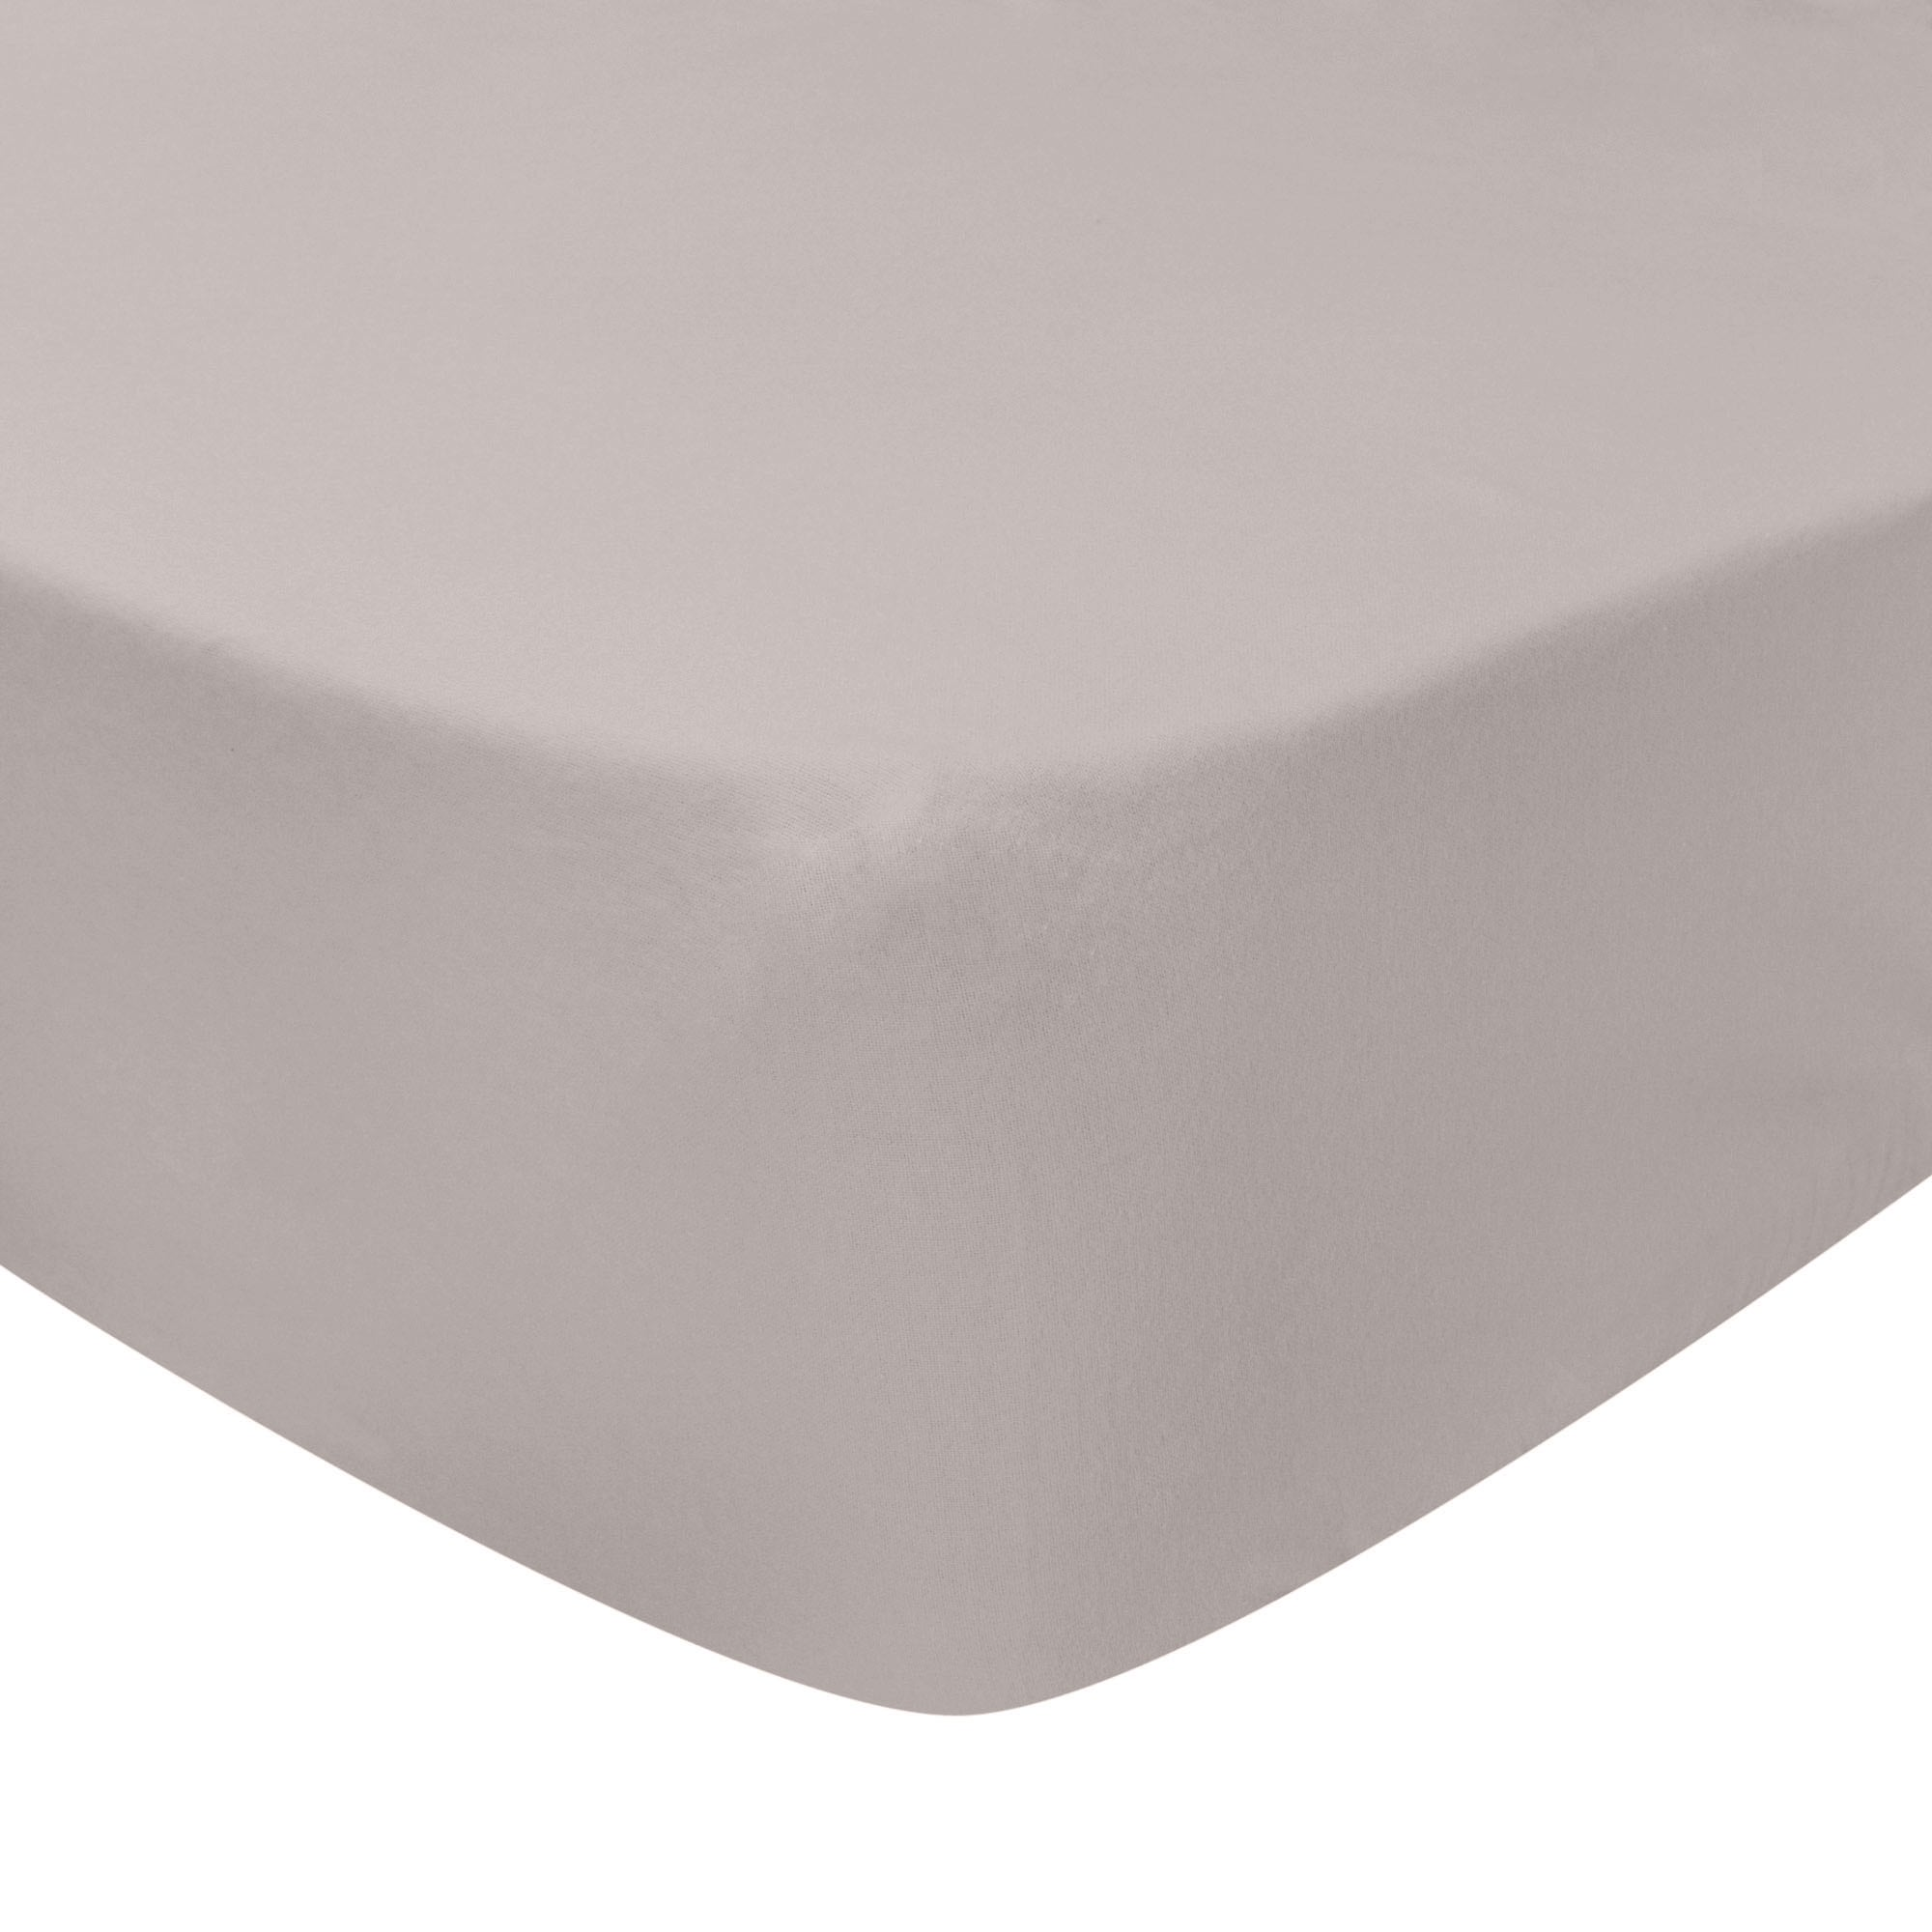 Photo of Luxury brushed cotton standard 28cm fitted sheet silver